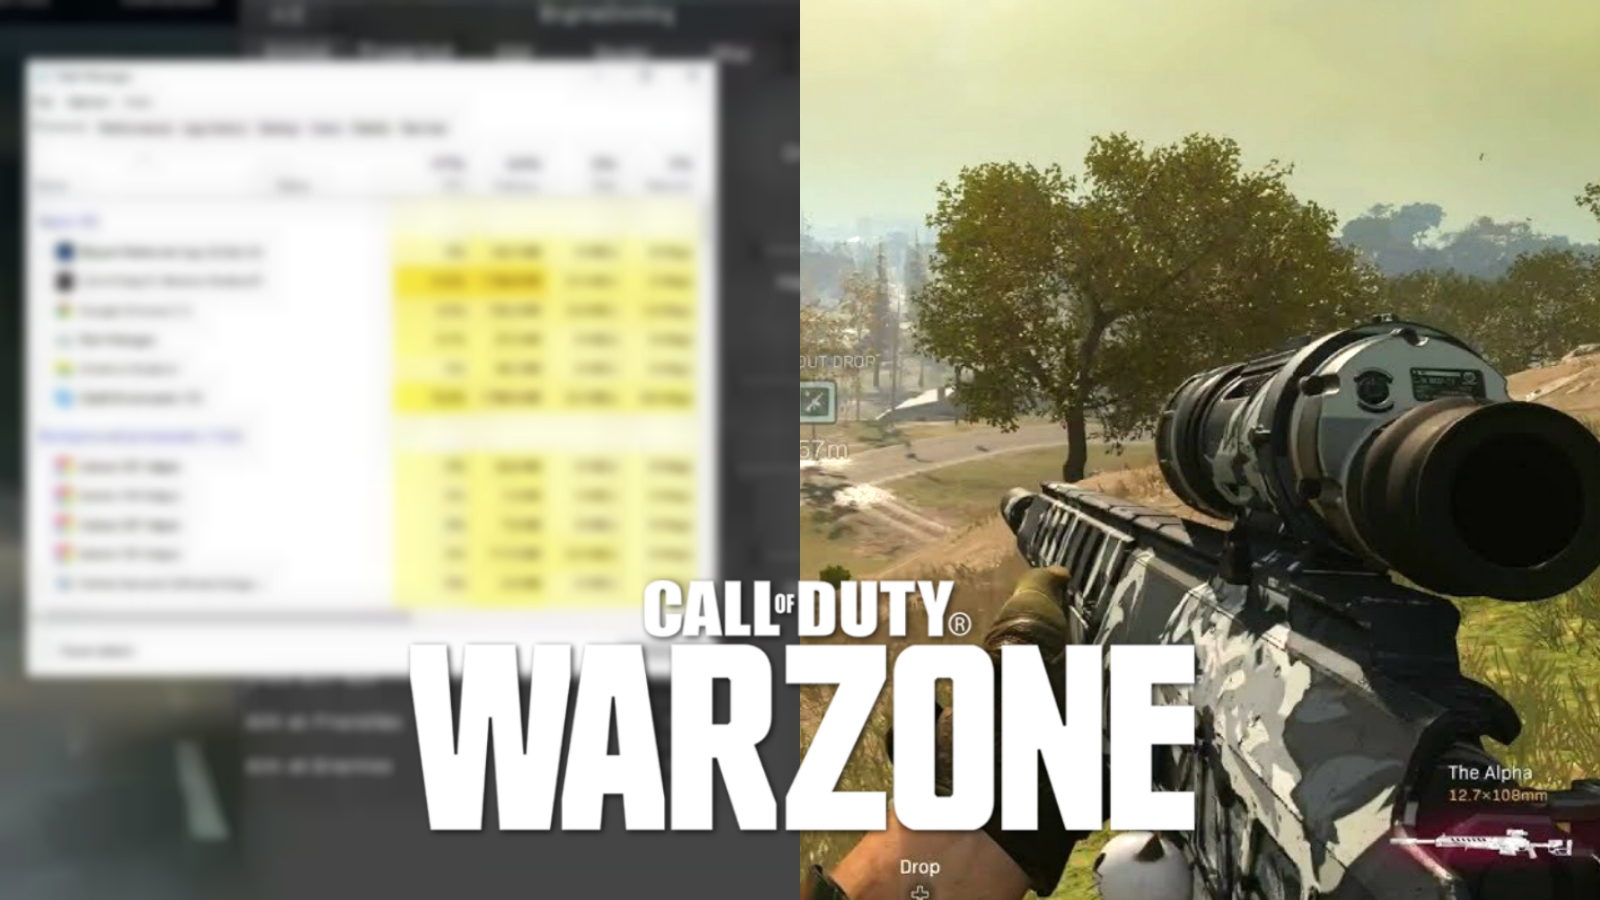 Task manager screen and warzone gameplay with warzone logo